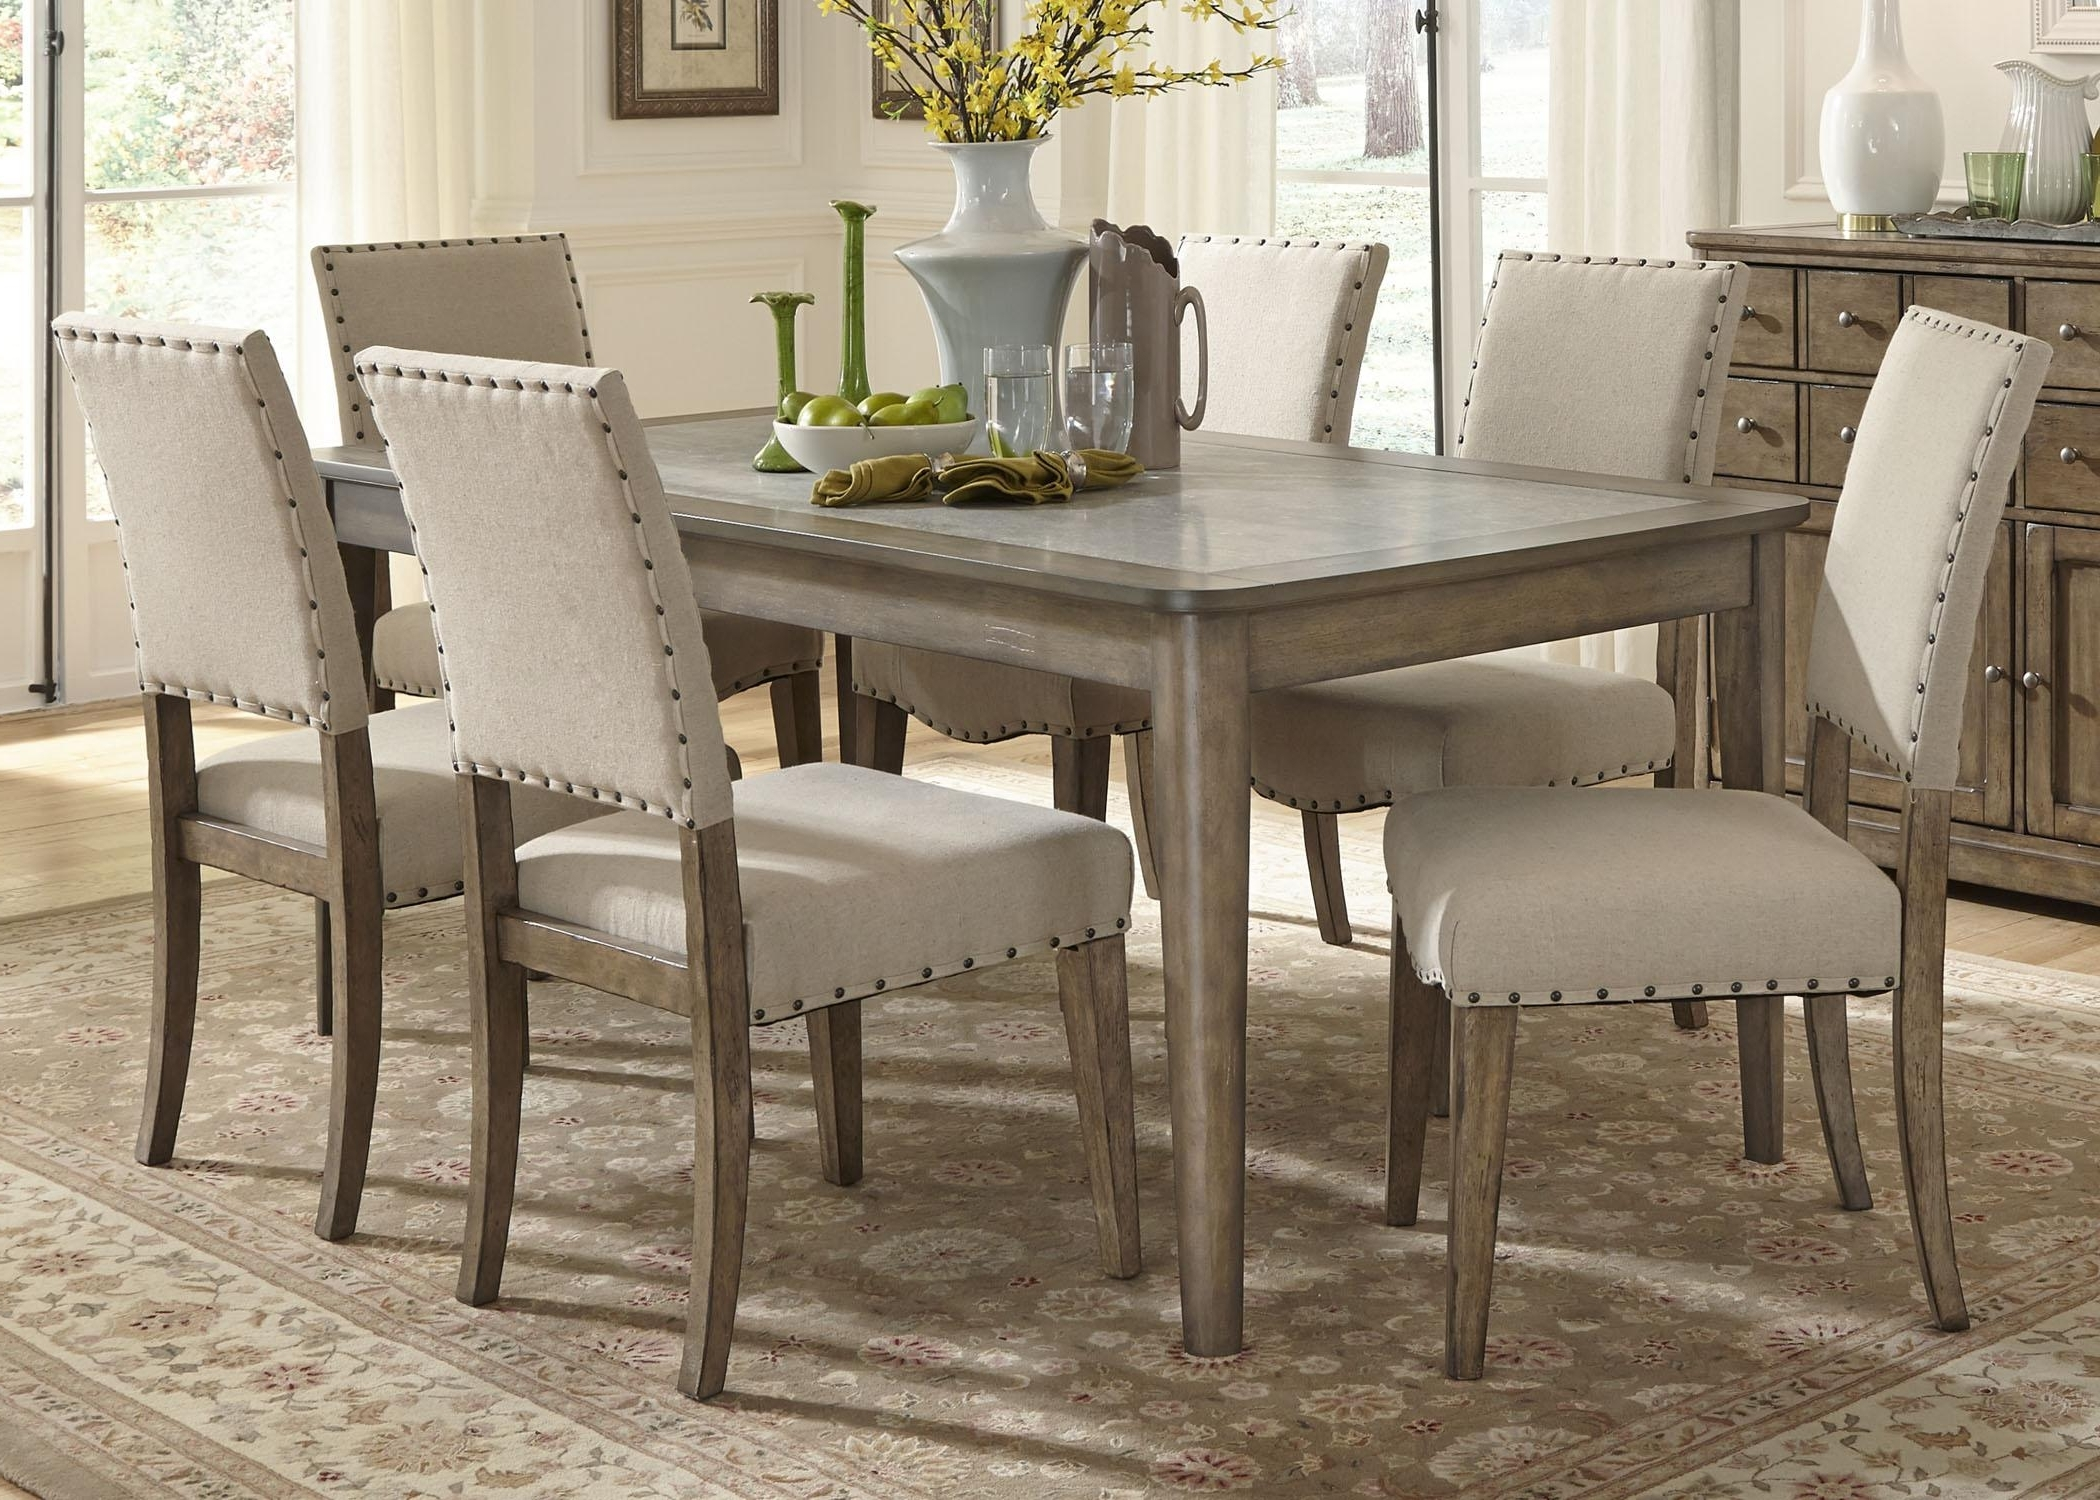 Most Recent Liberty Furniture Weatherford Casual Rustic 7 Piece Dining Table And In Dining Sets (View 17 of 25)